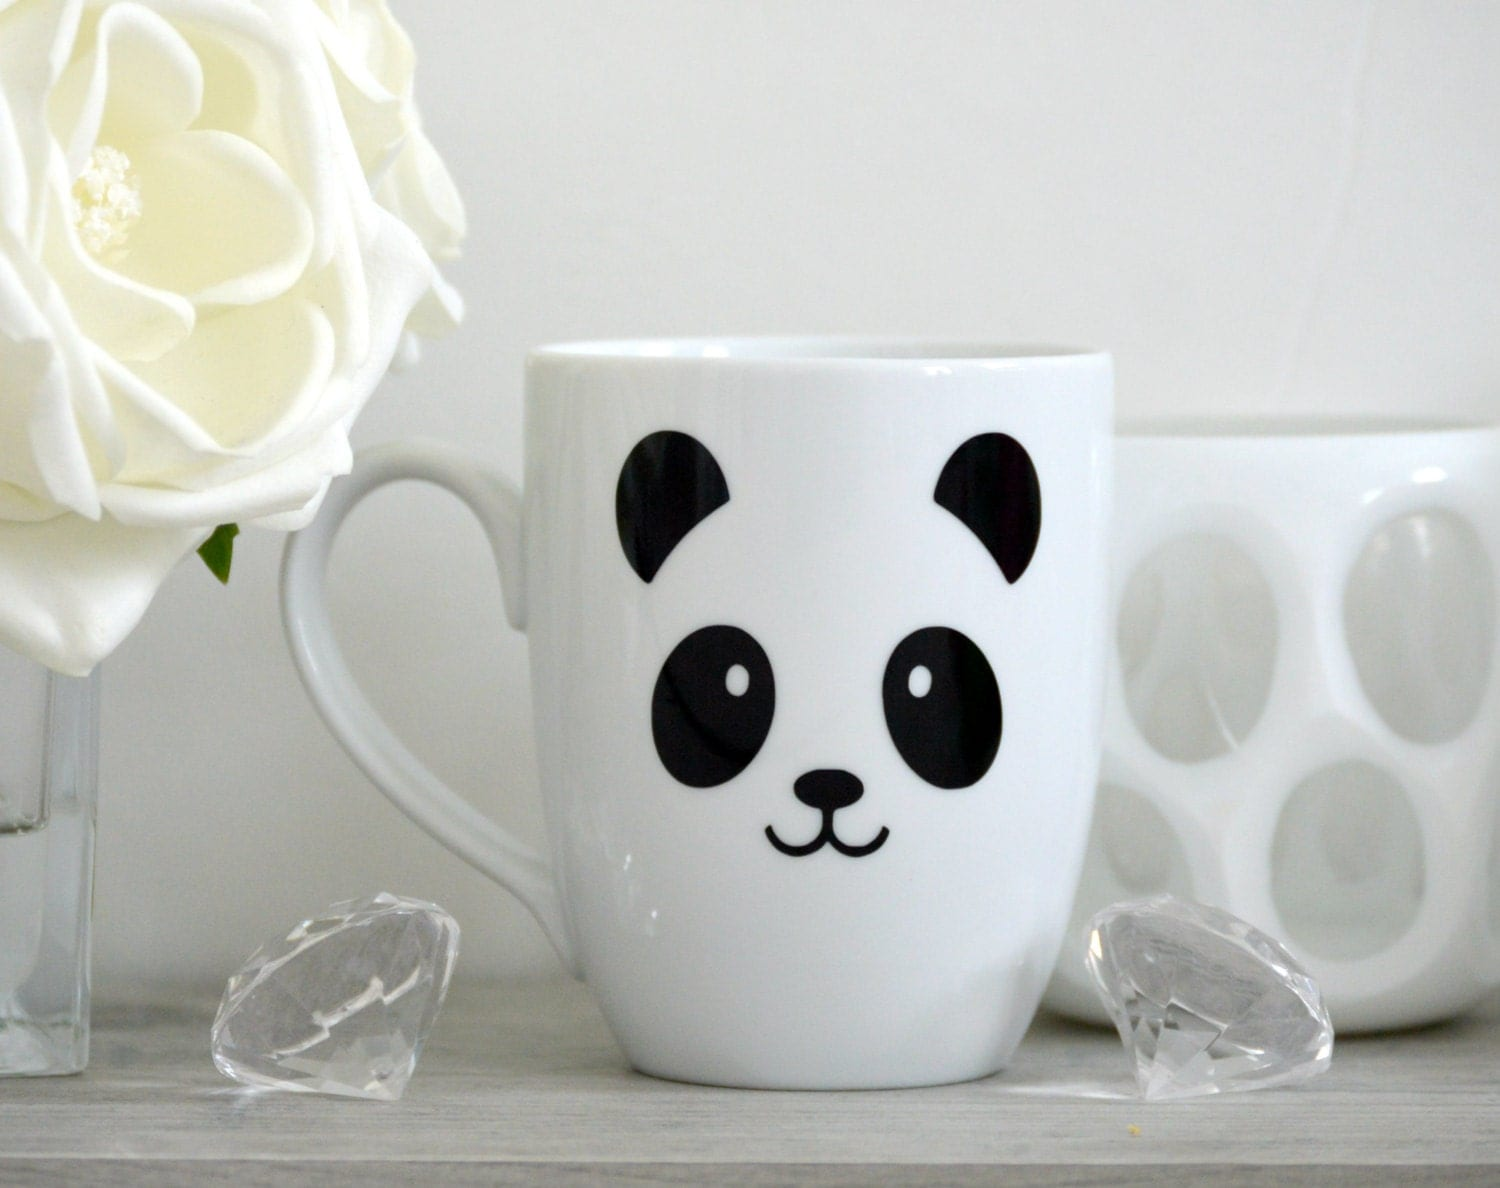 panda mug panda bear mug panda face custom coffee mug. Black Bedroom Furniture Sets. Home Design Ideas